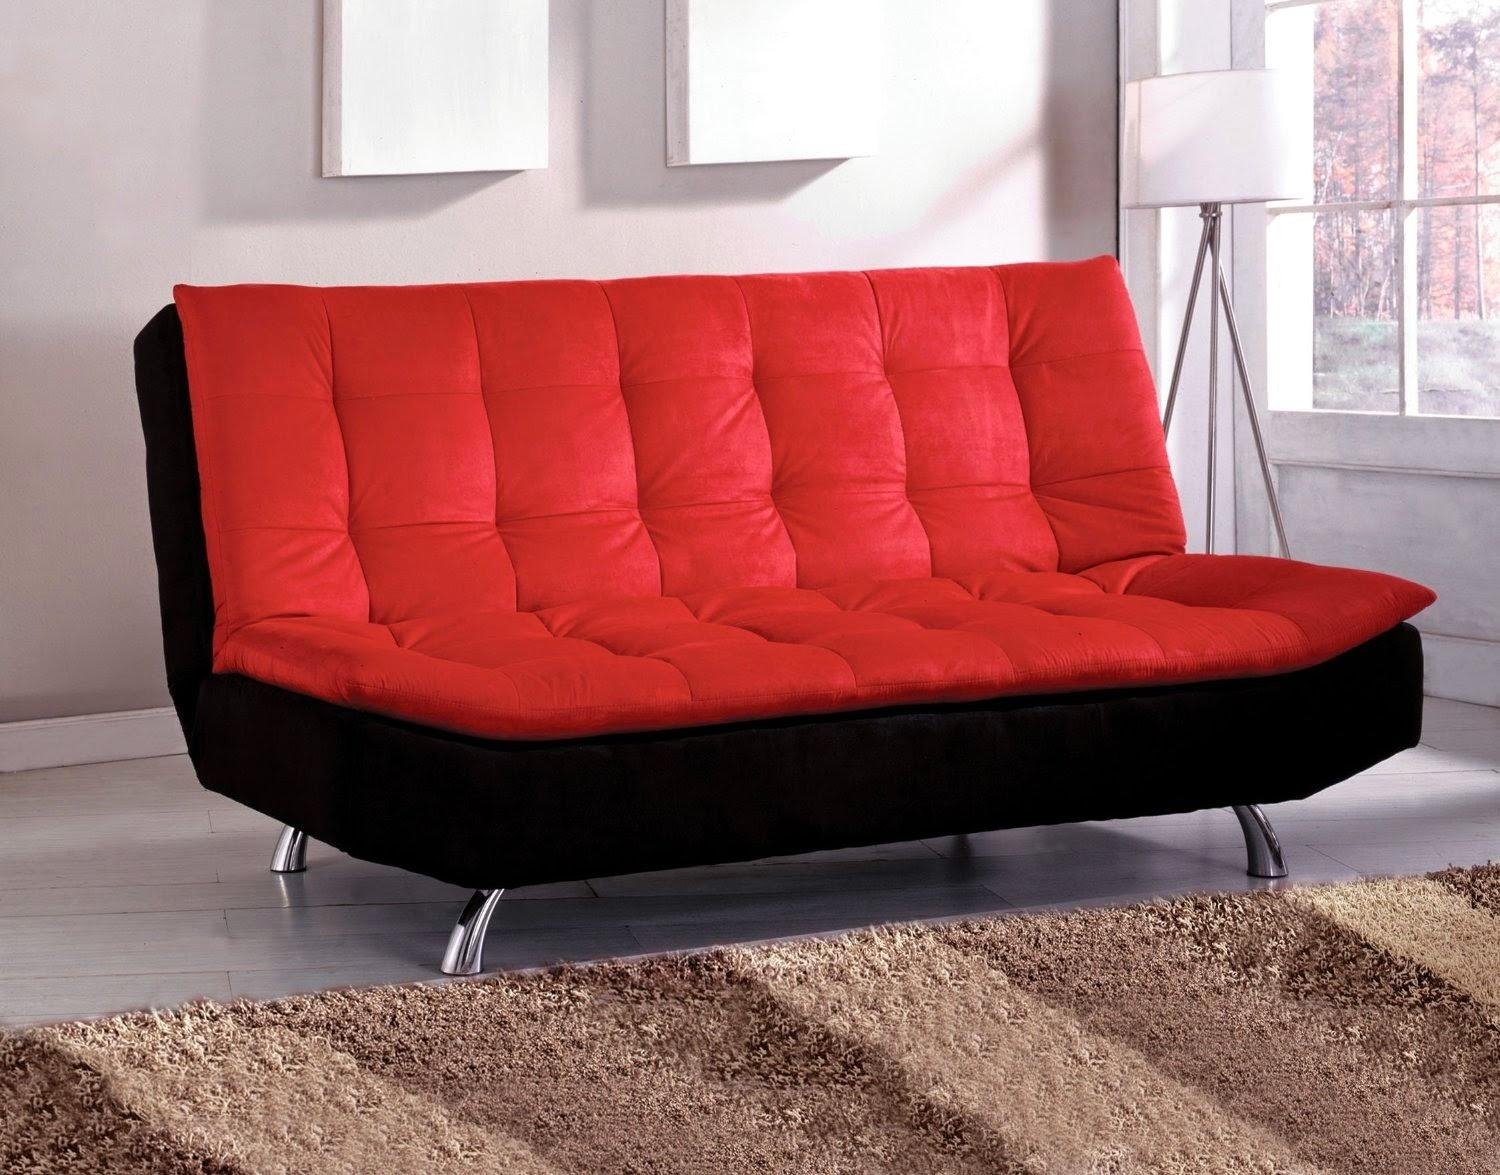 Red Couches: Red And Black Couches With Sofa Red And Black (View 11 of 20)